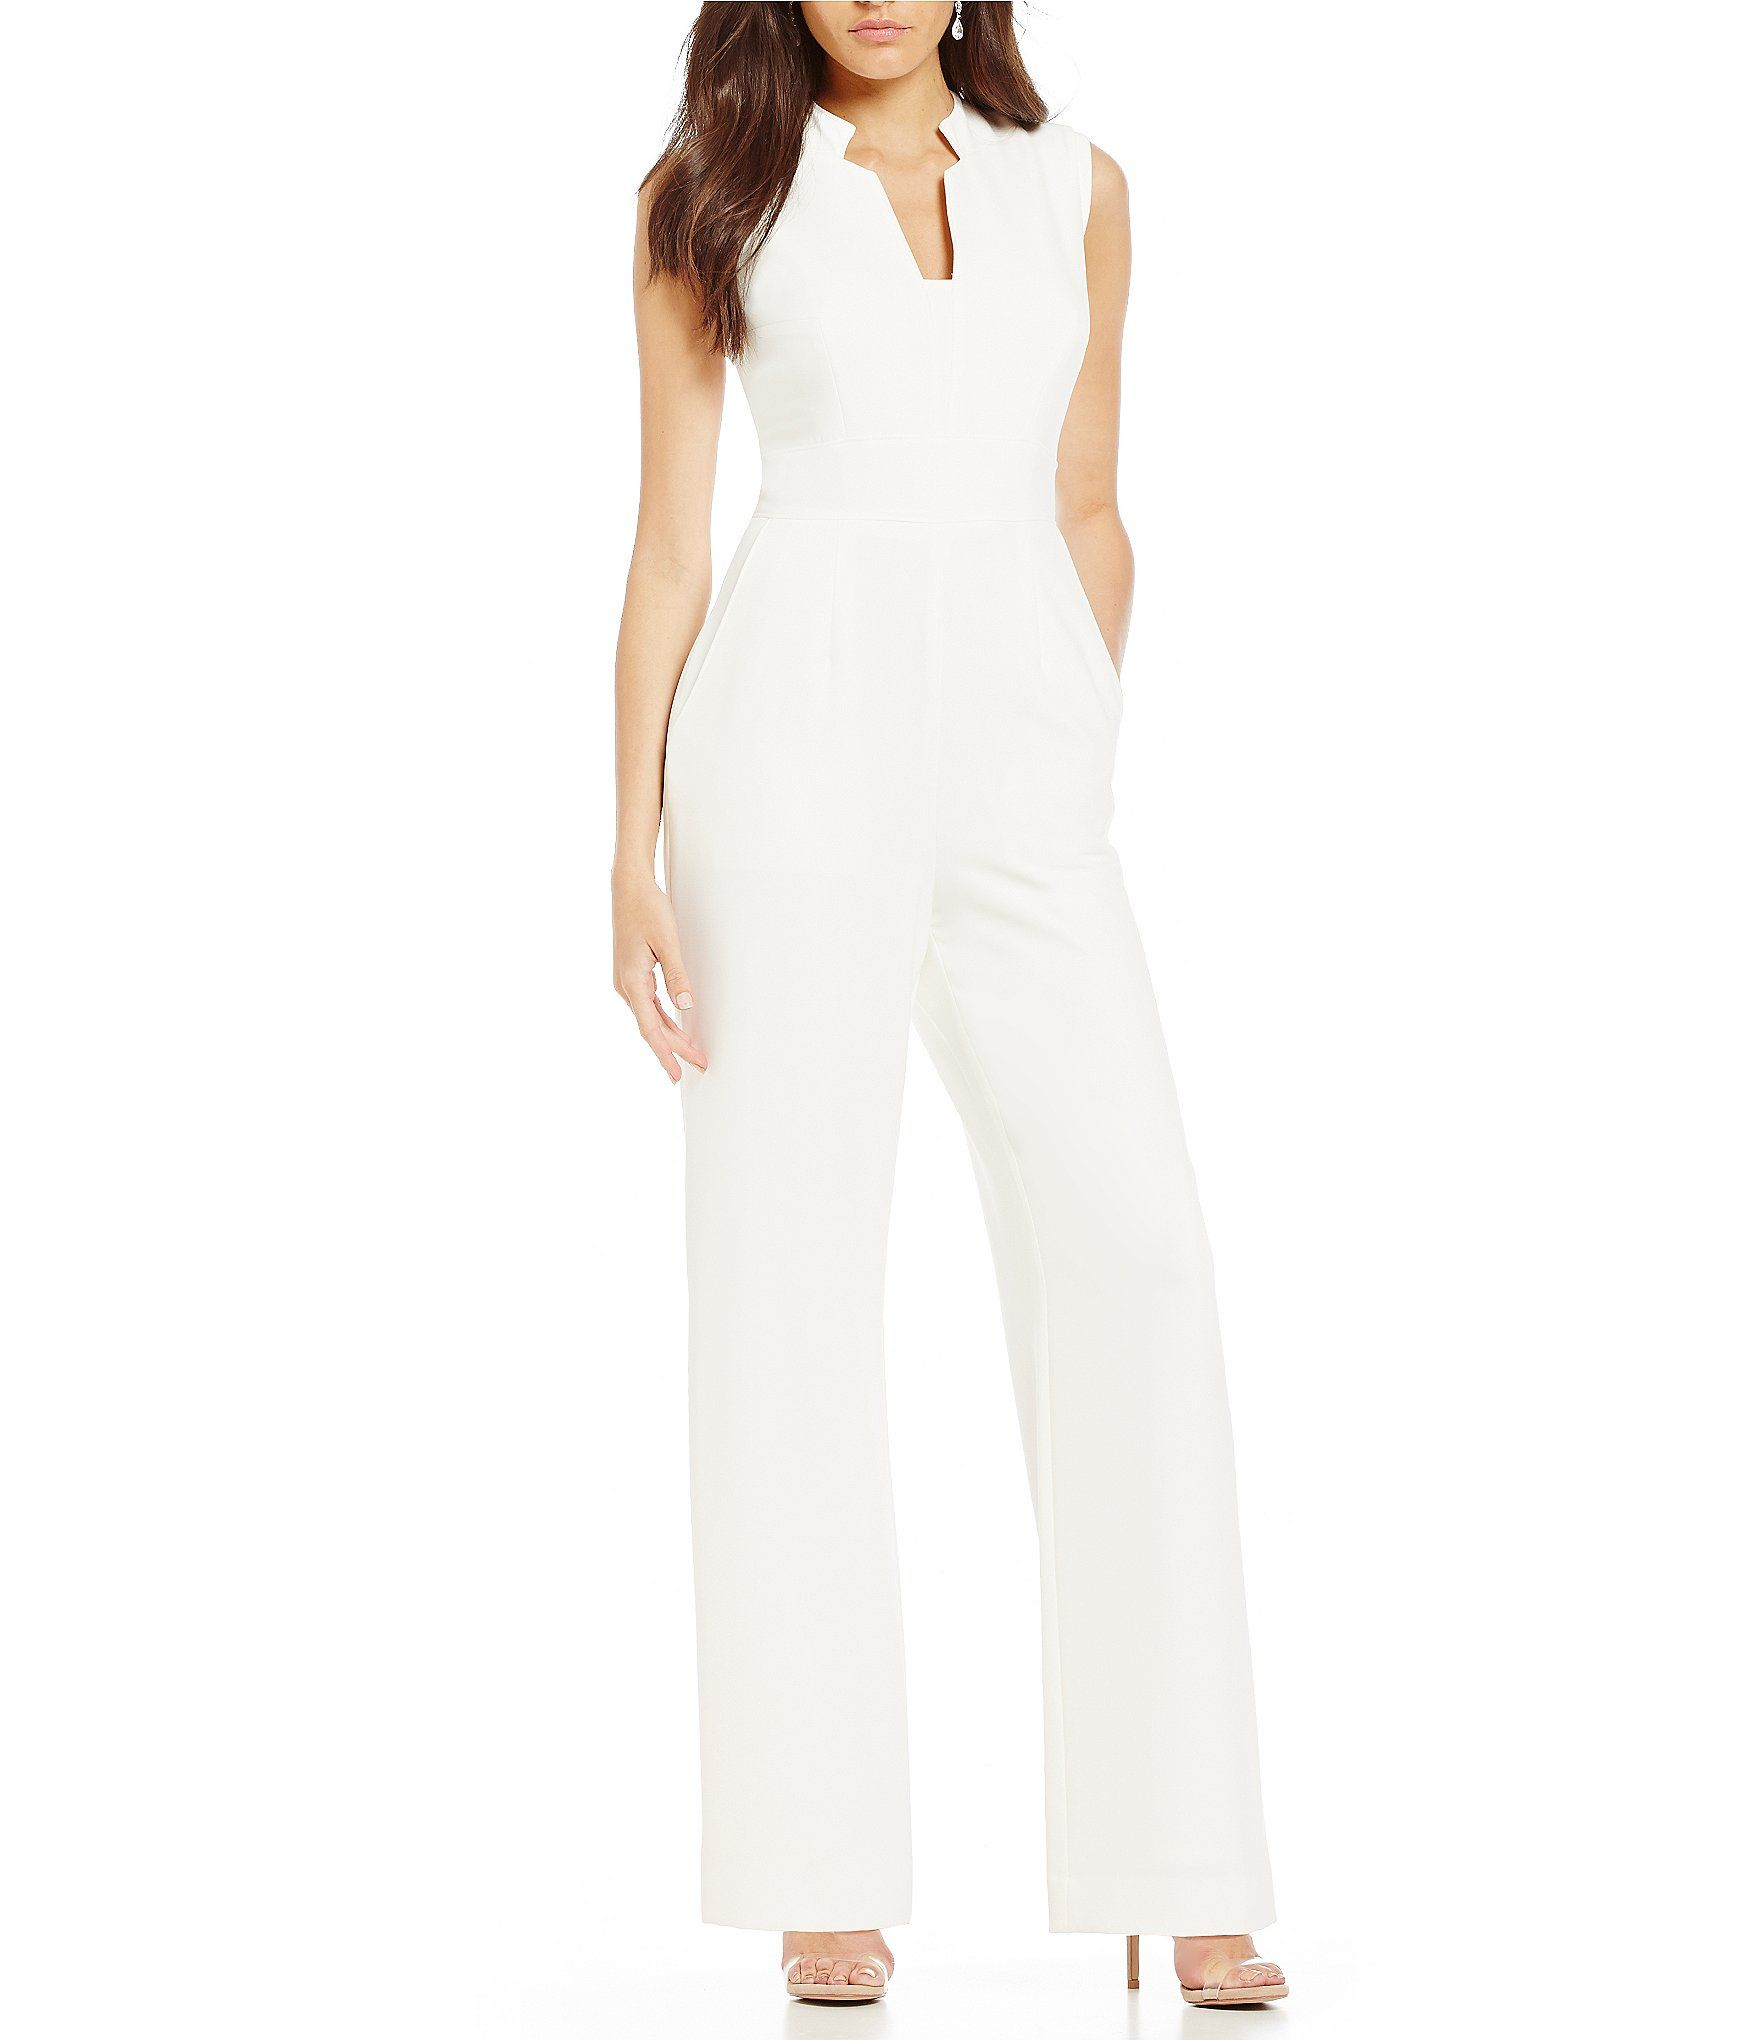 dcc58187314 Tahari by ASL Raised Collar Sleeveless Solid Crepe Jumpsuit